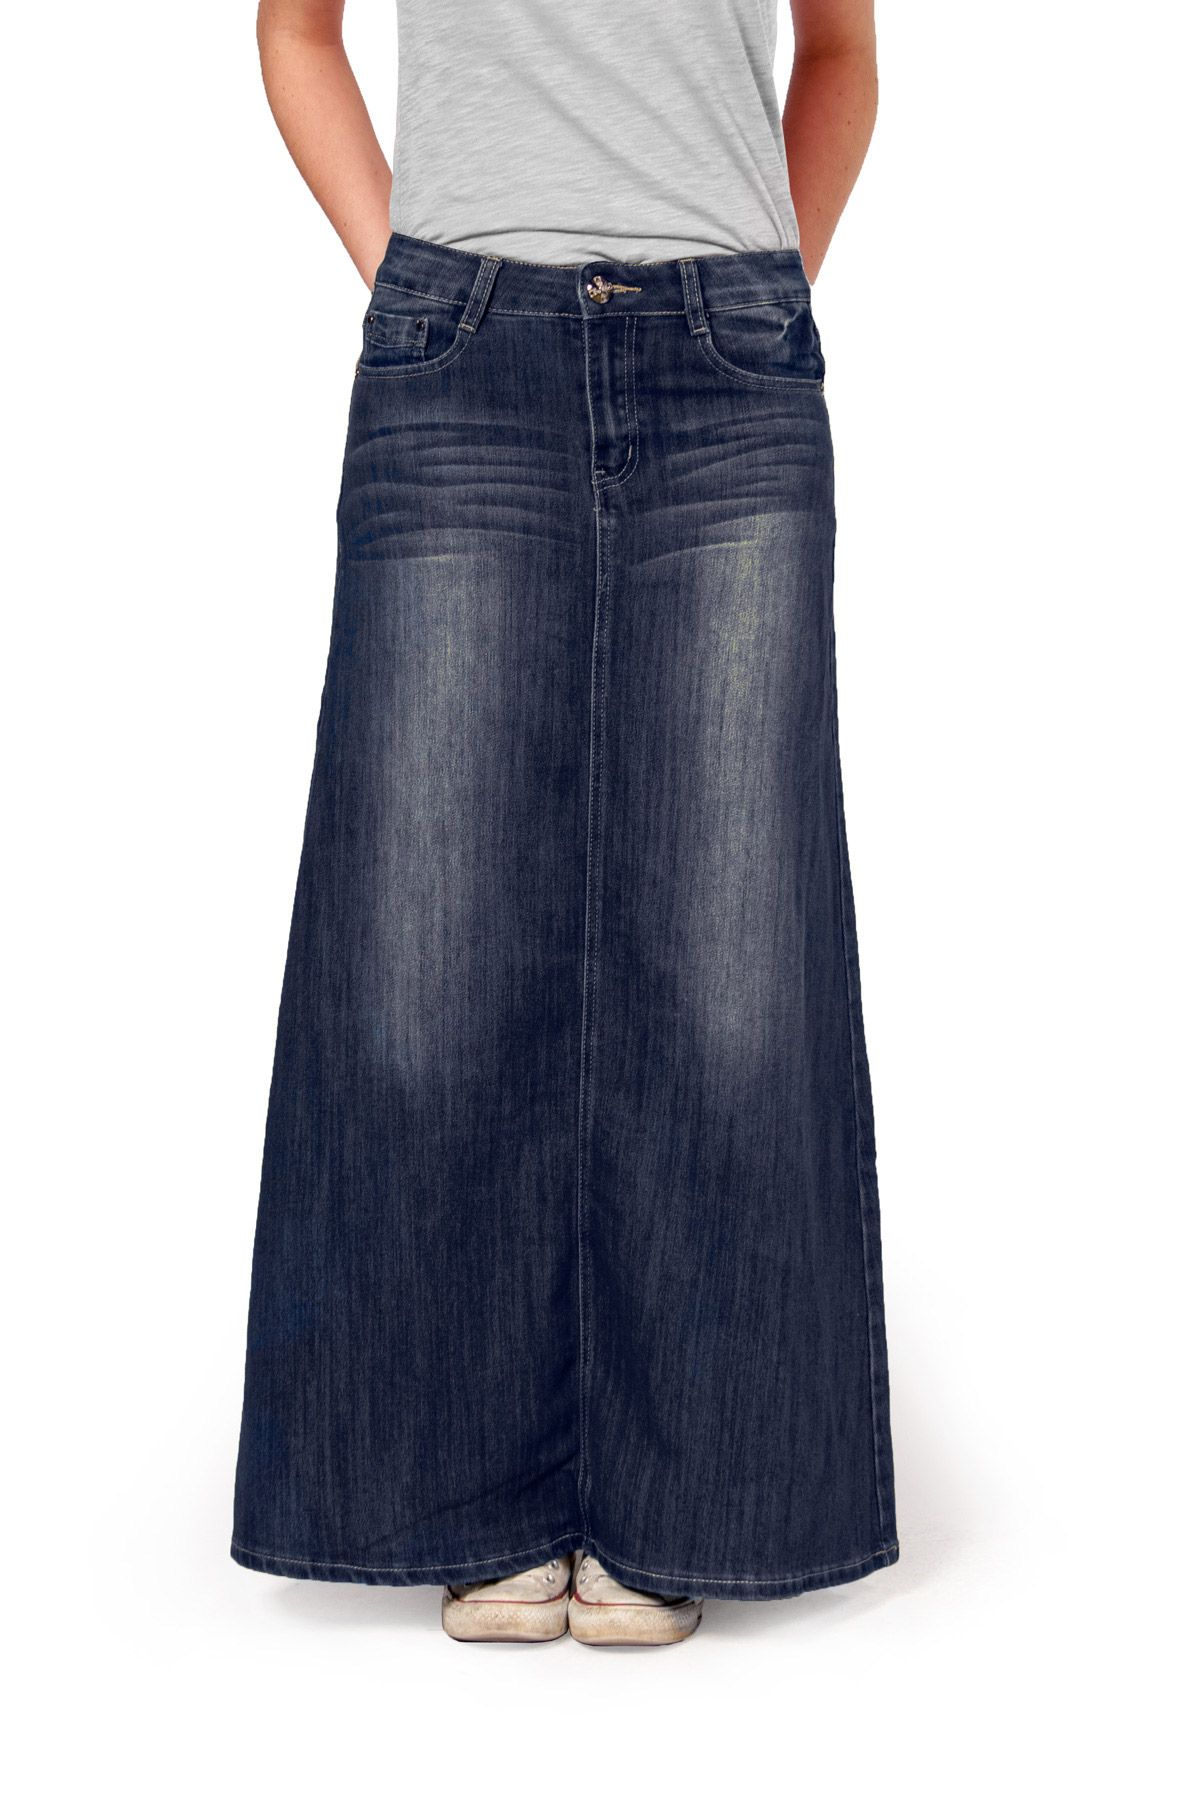 fd179145d9e26 Maxi style dark wash modest denim skirt. Lovely long jeans skirt in soft  medium weight denim.